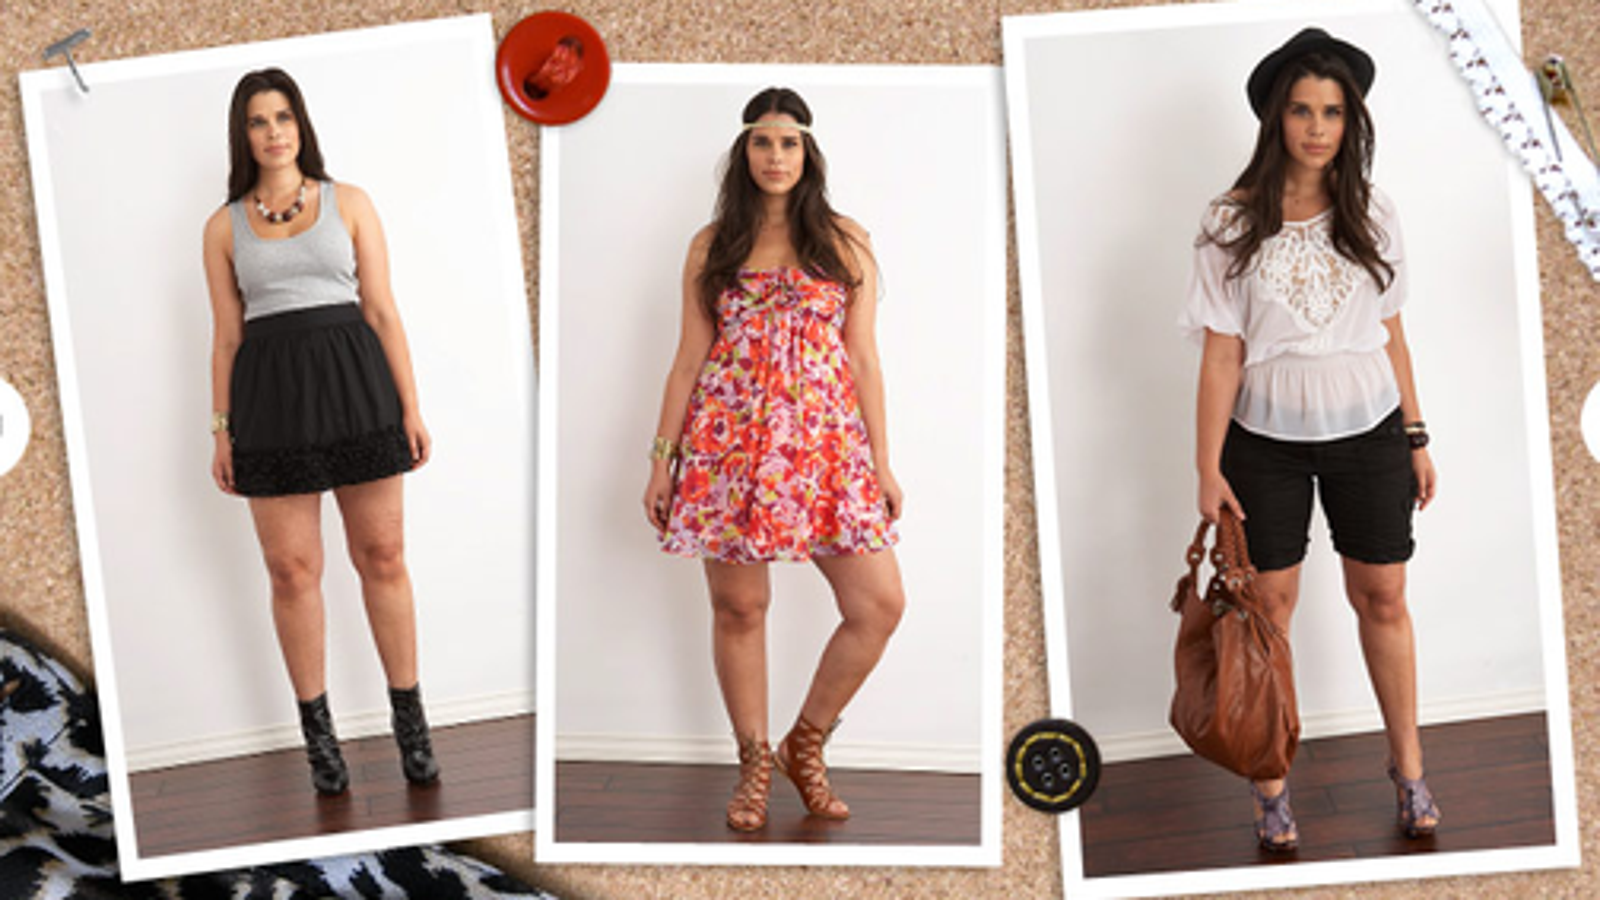 aa8a90d07dc Big Problems Arise With Plus-Size Clothing For Teens